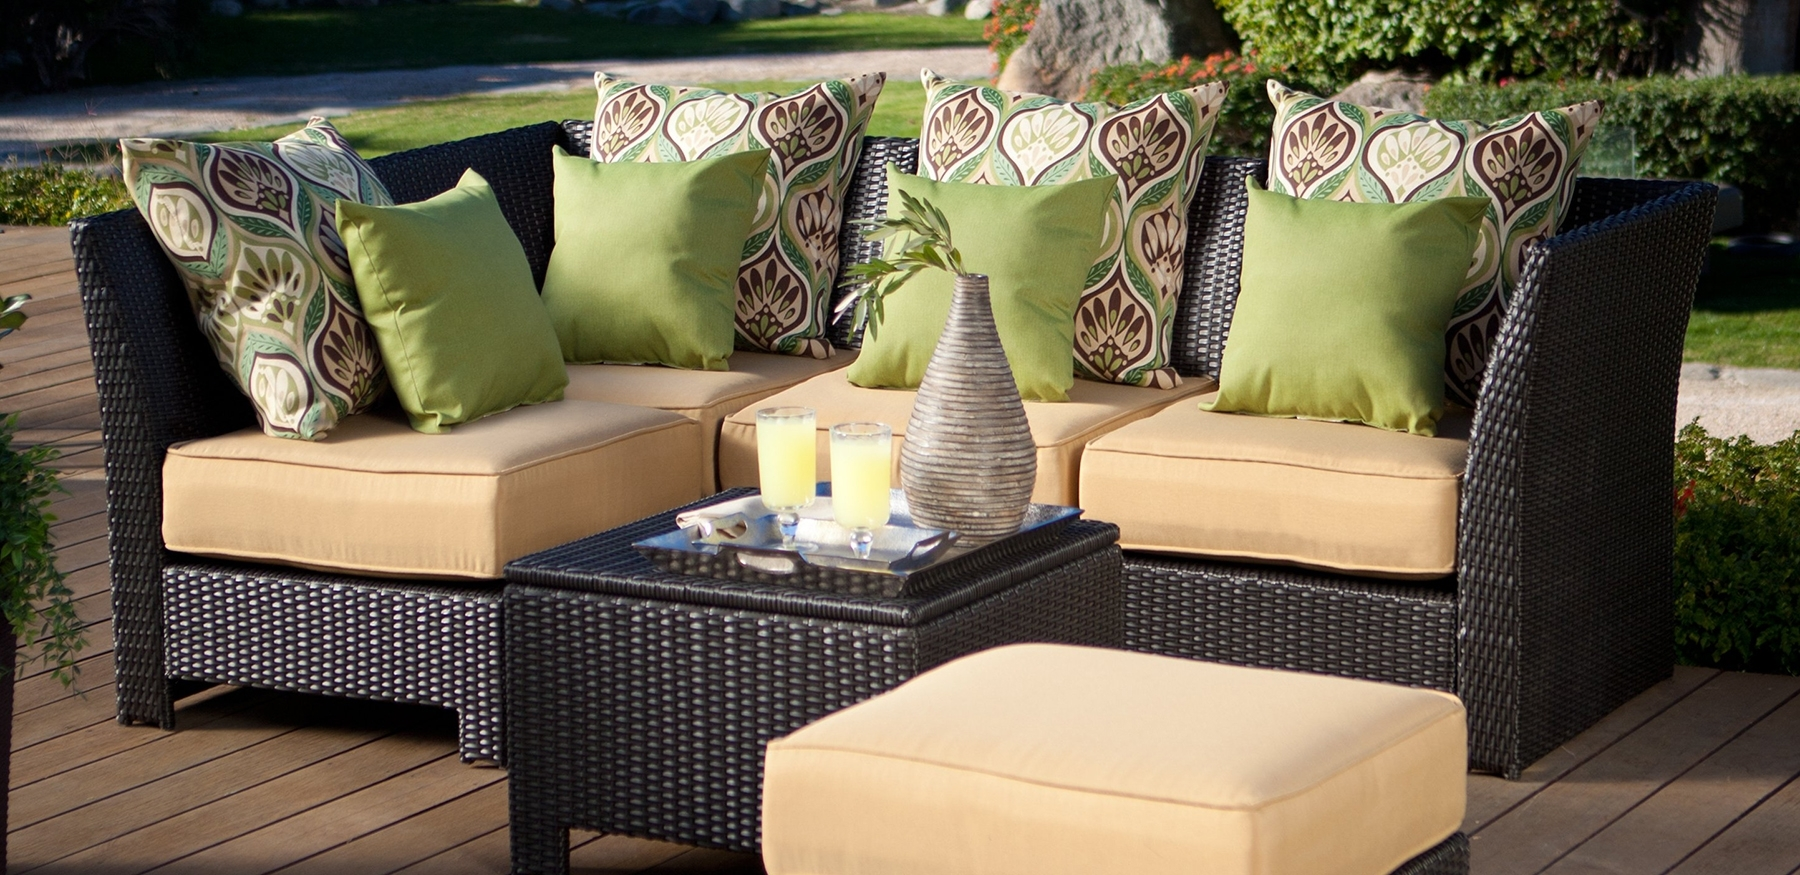 Widely Used Stylish Weaves – Kansas City Homes & Style Inside Nfm Patio Conversation Sets (View 15 of 15)